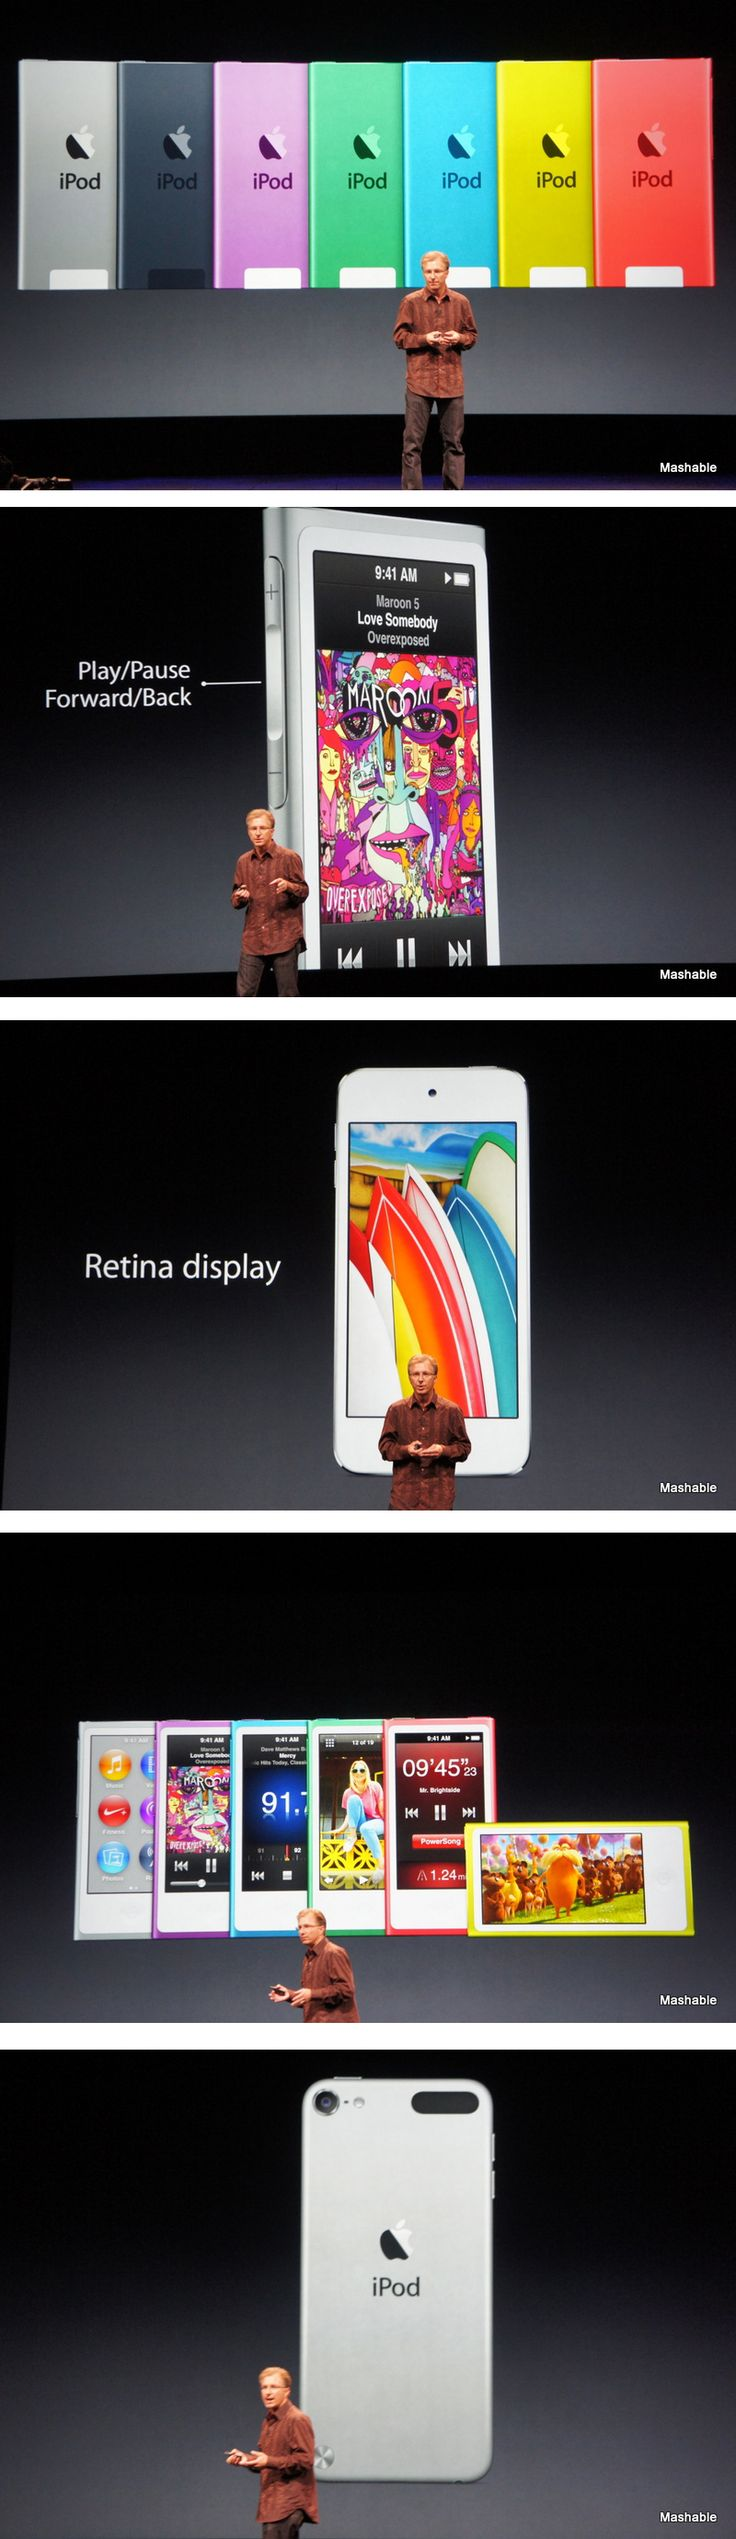 Apple Announces New Colorful, Thinner iPod Nanos